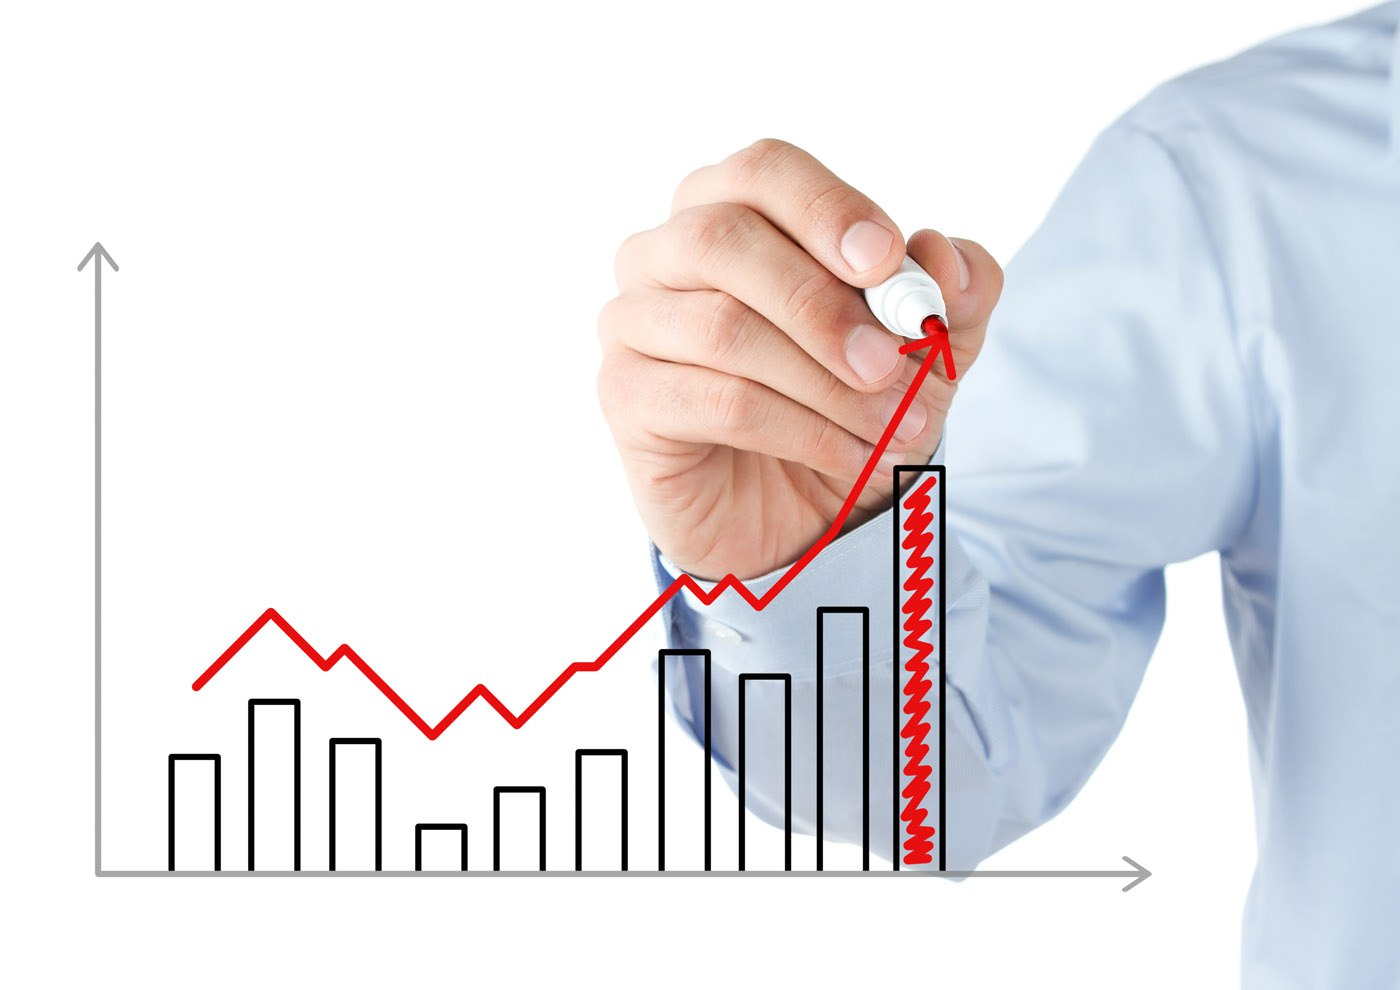 Do storage market share trends signal trouble for traditional storage vendors?